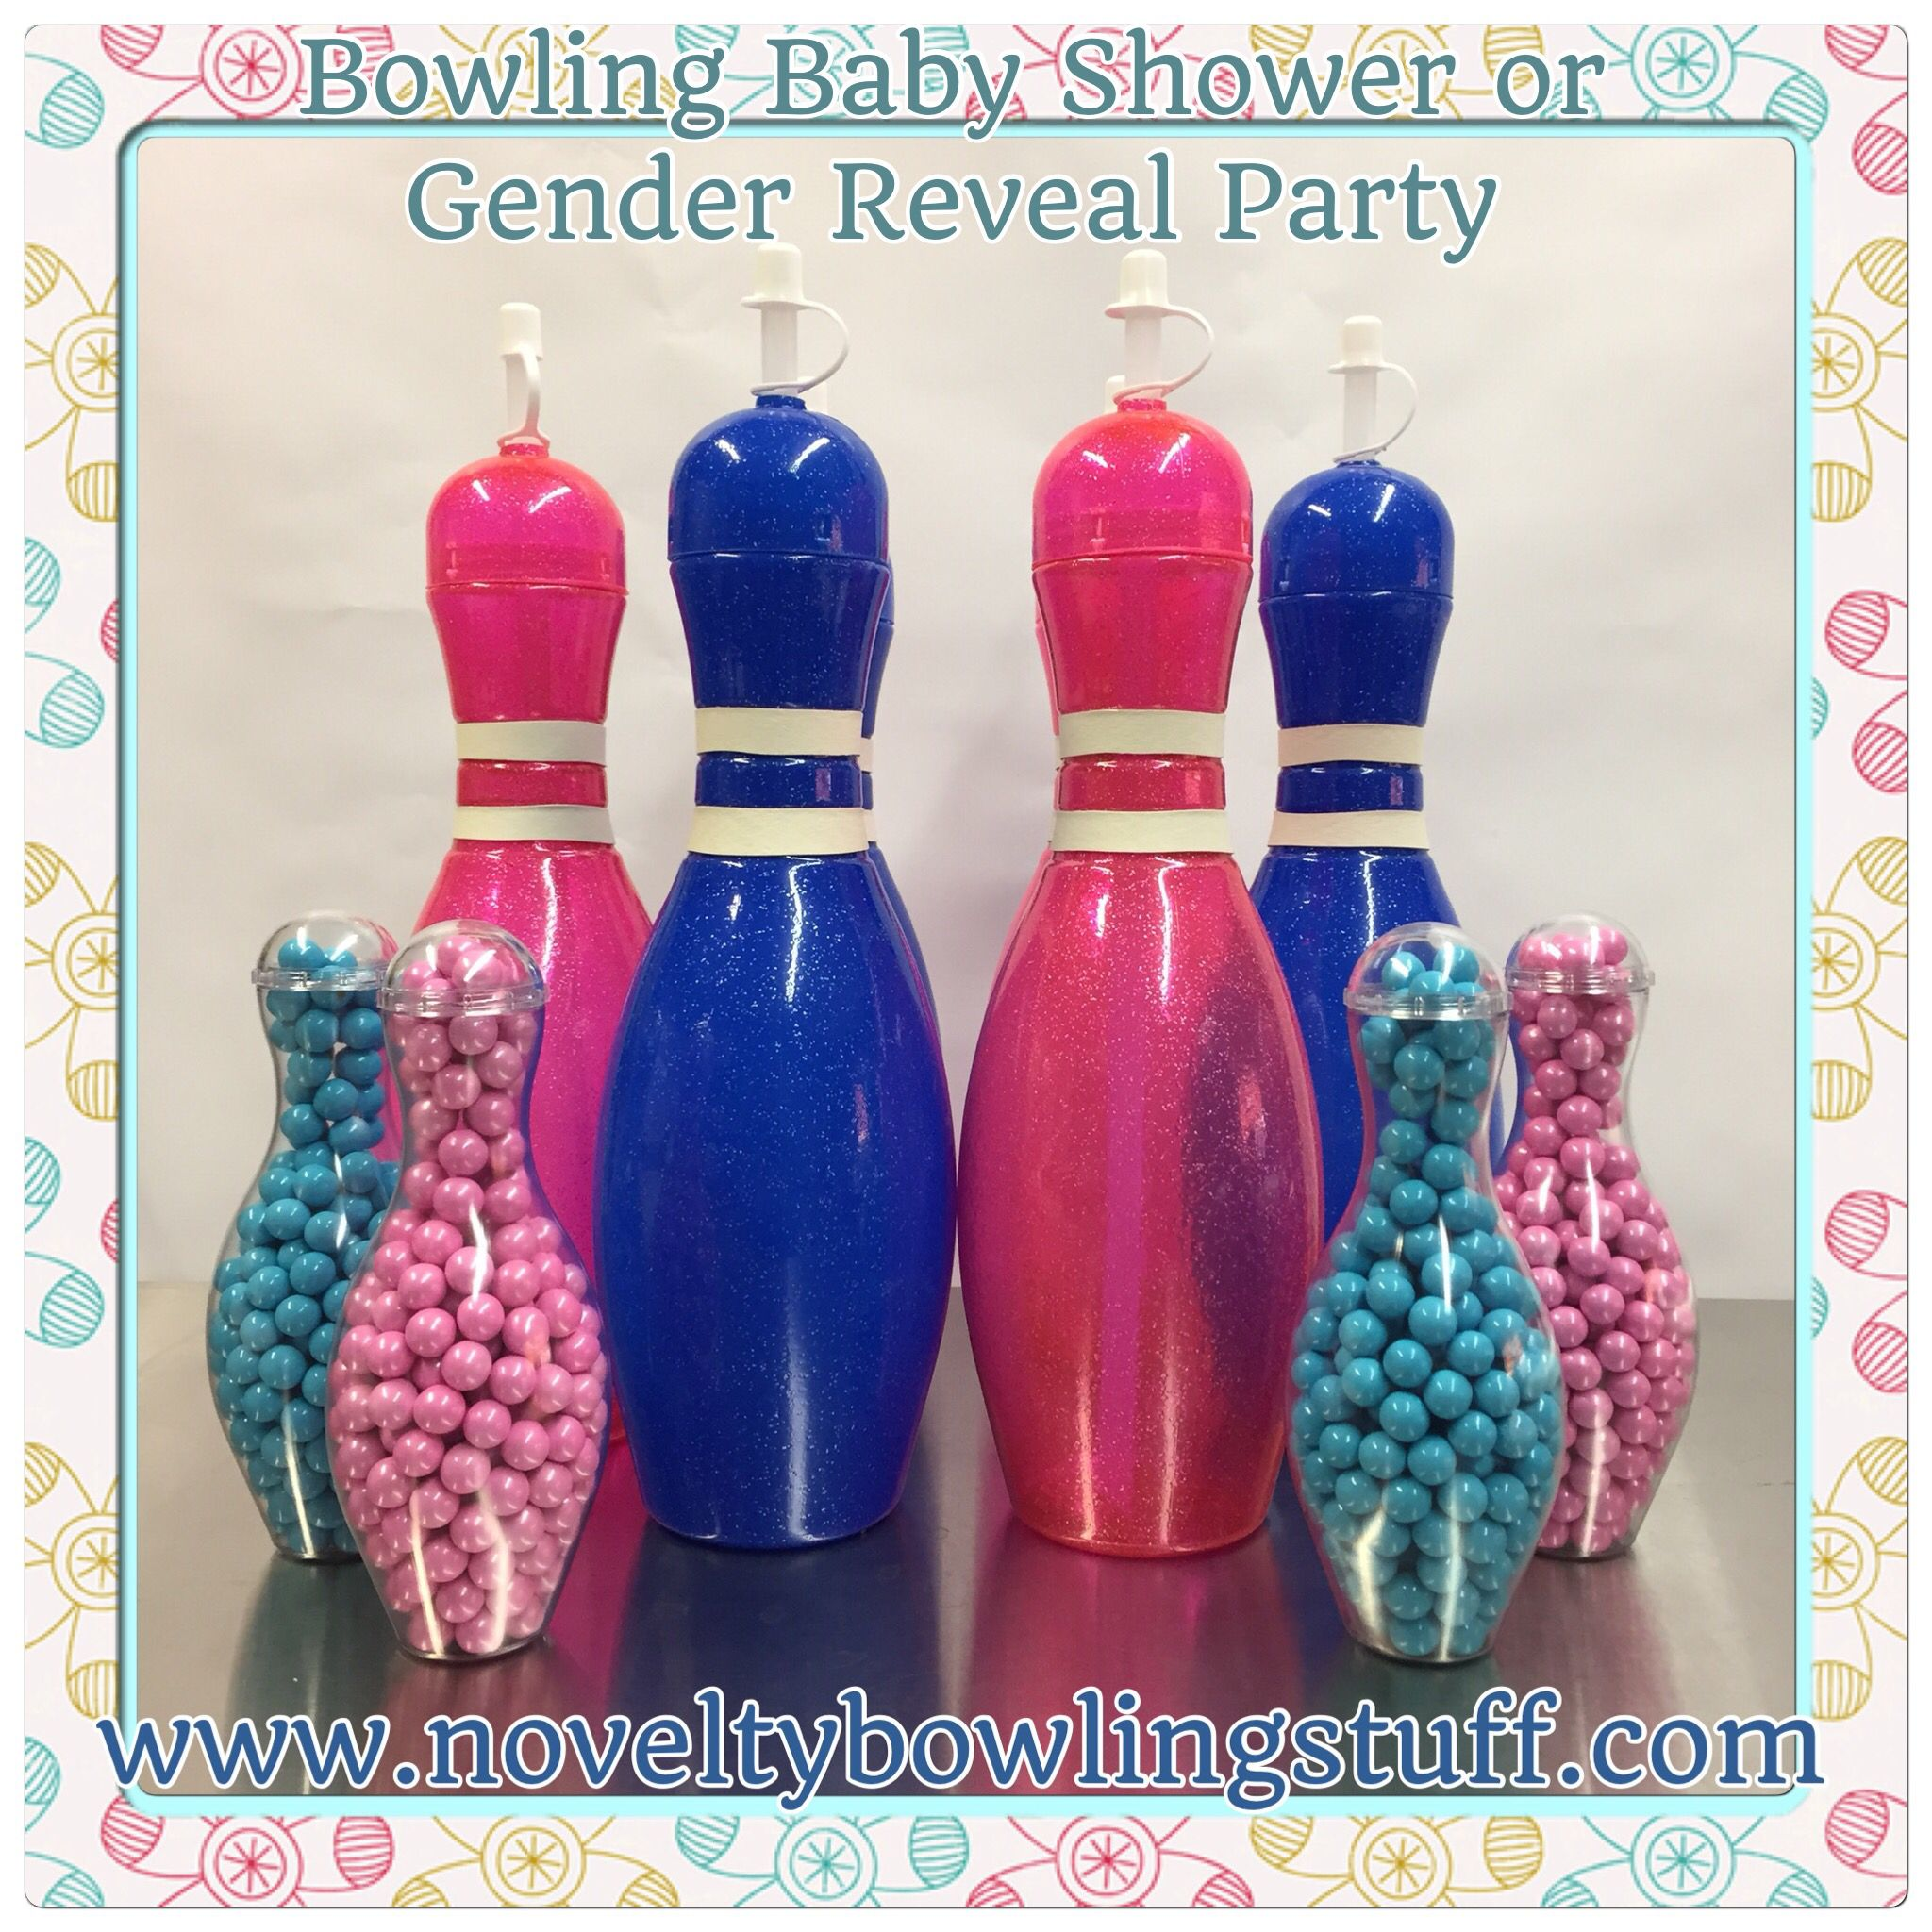 Baby Shower Reveal Party: Perfect Party Favor For Your Bowling Themed Baby Shower Or